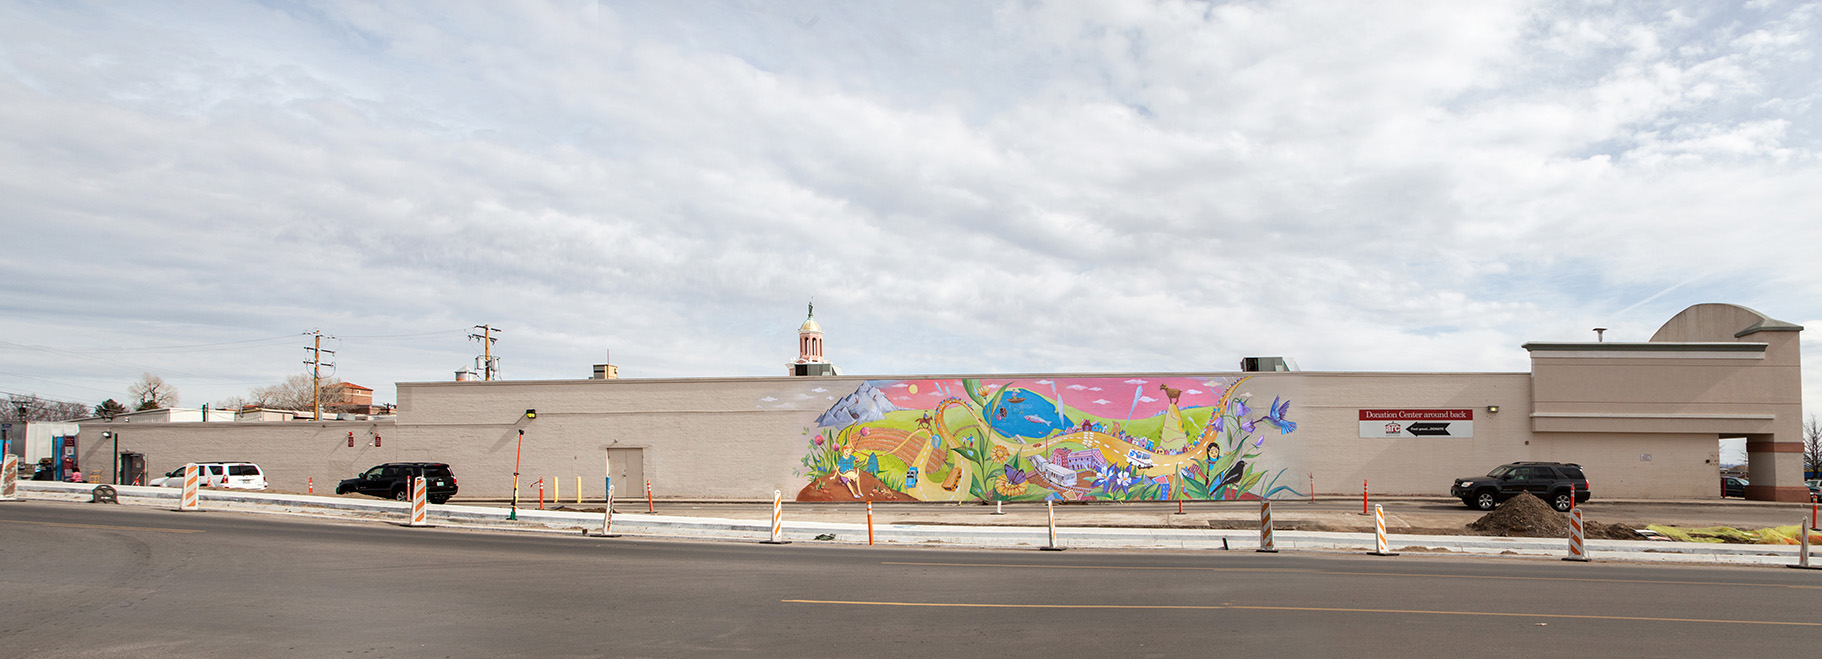 A sketch for the West Colfax Mural Fest